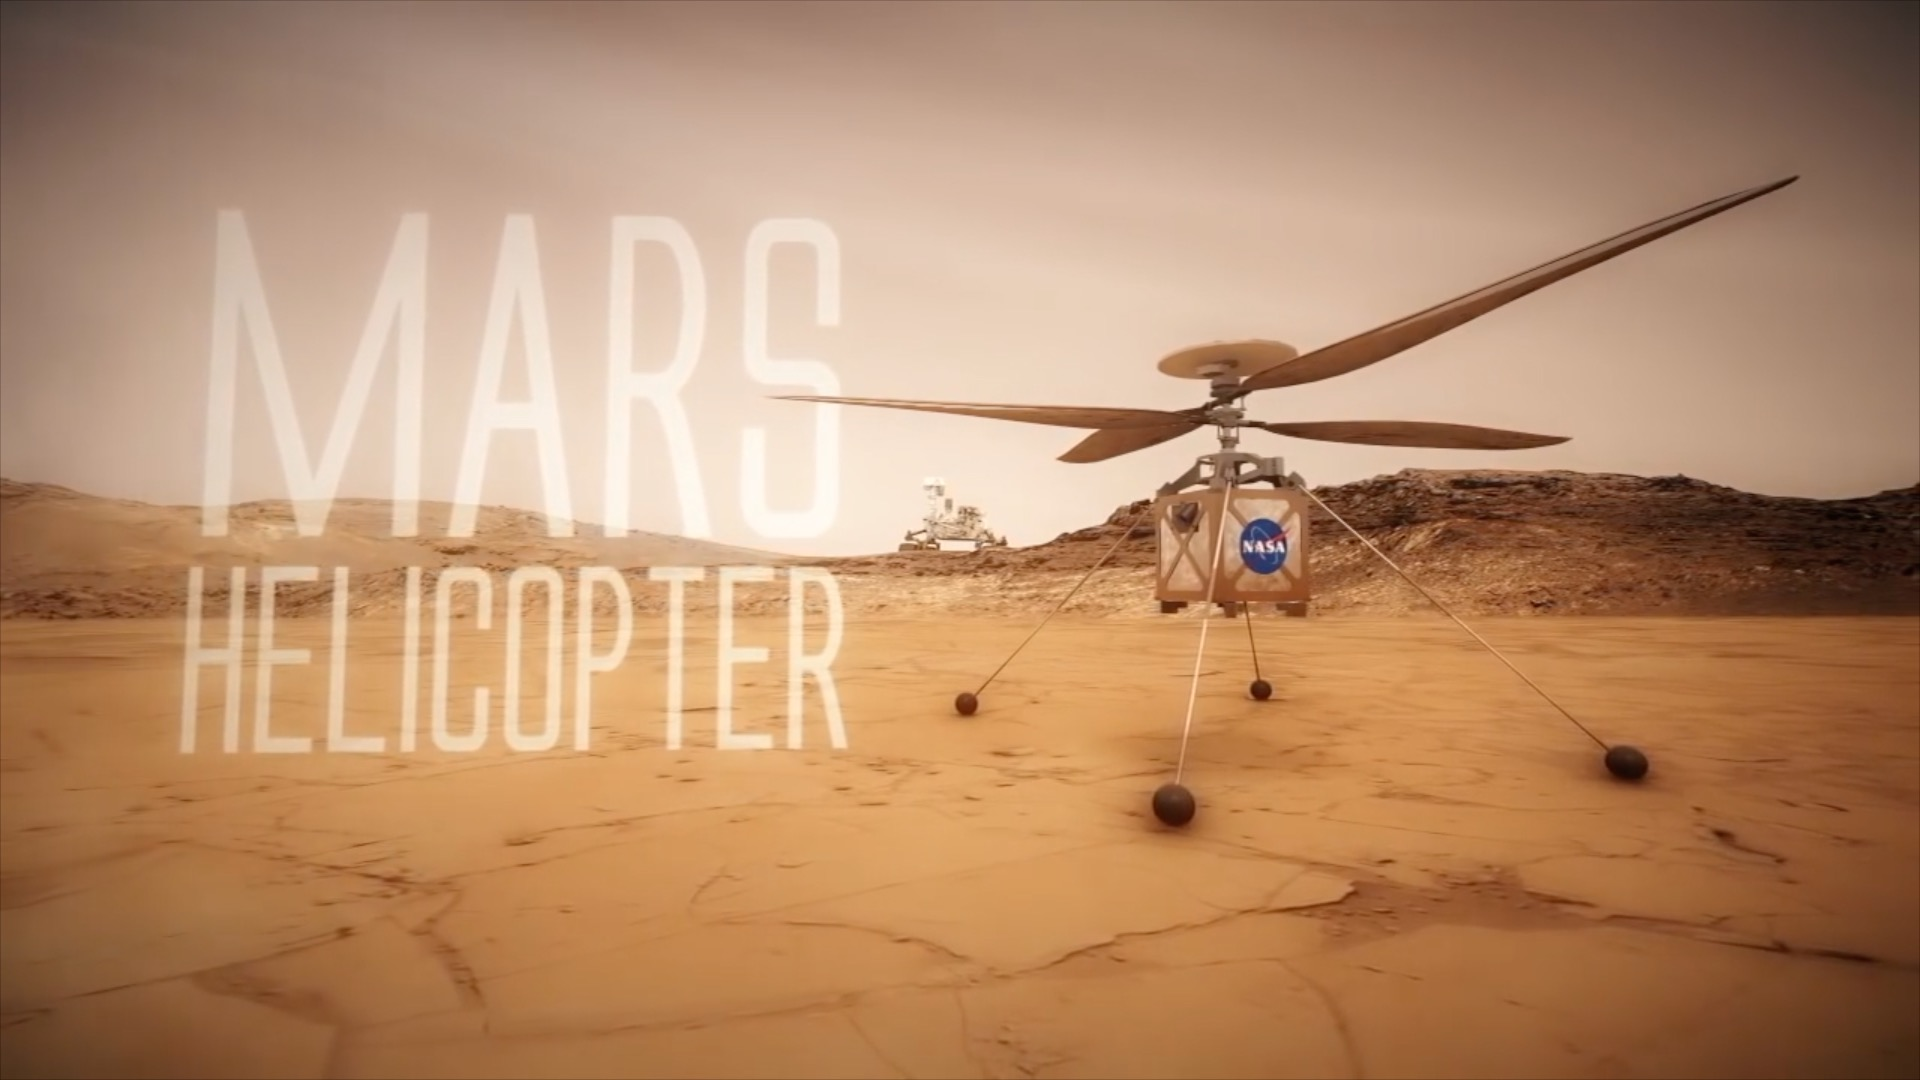 Airbus tapped to design Fetch Mars rover